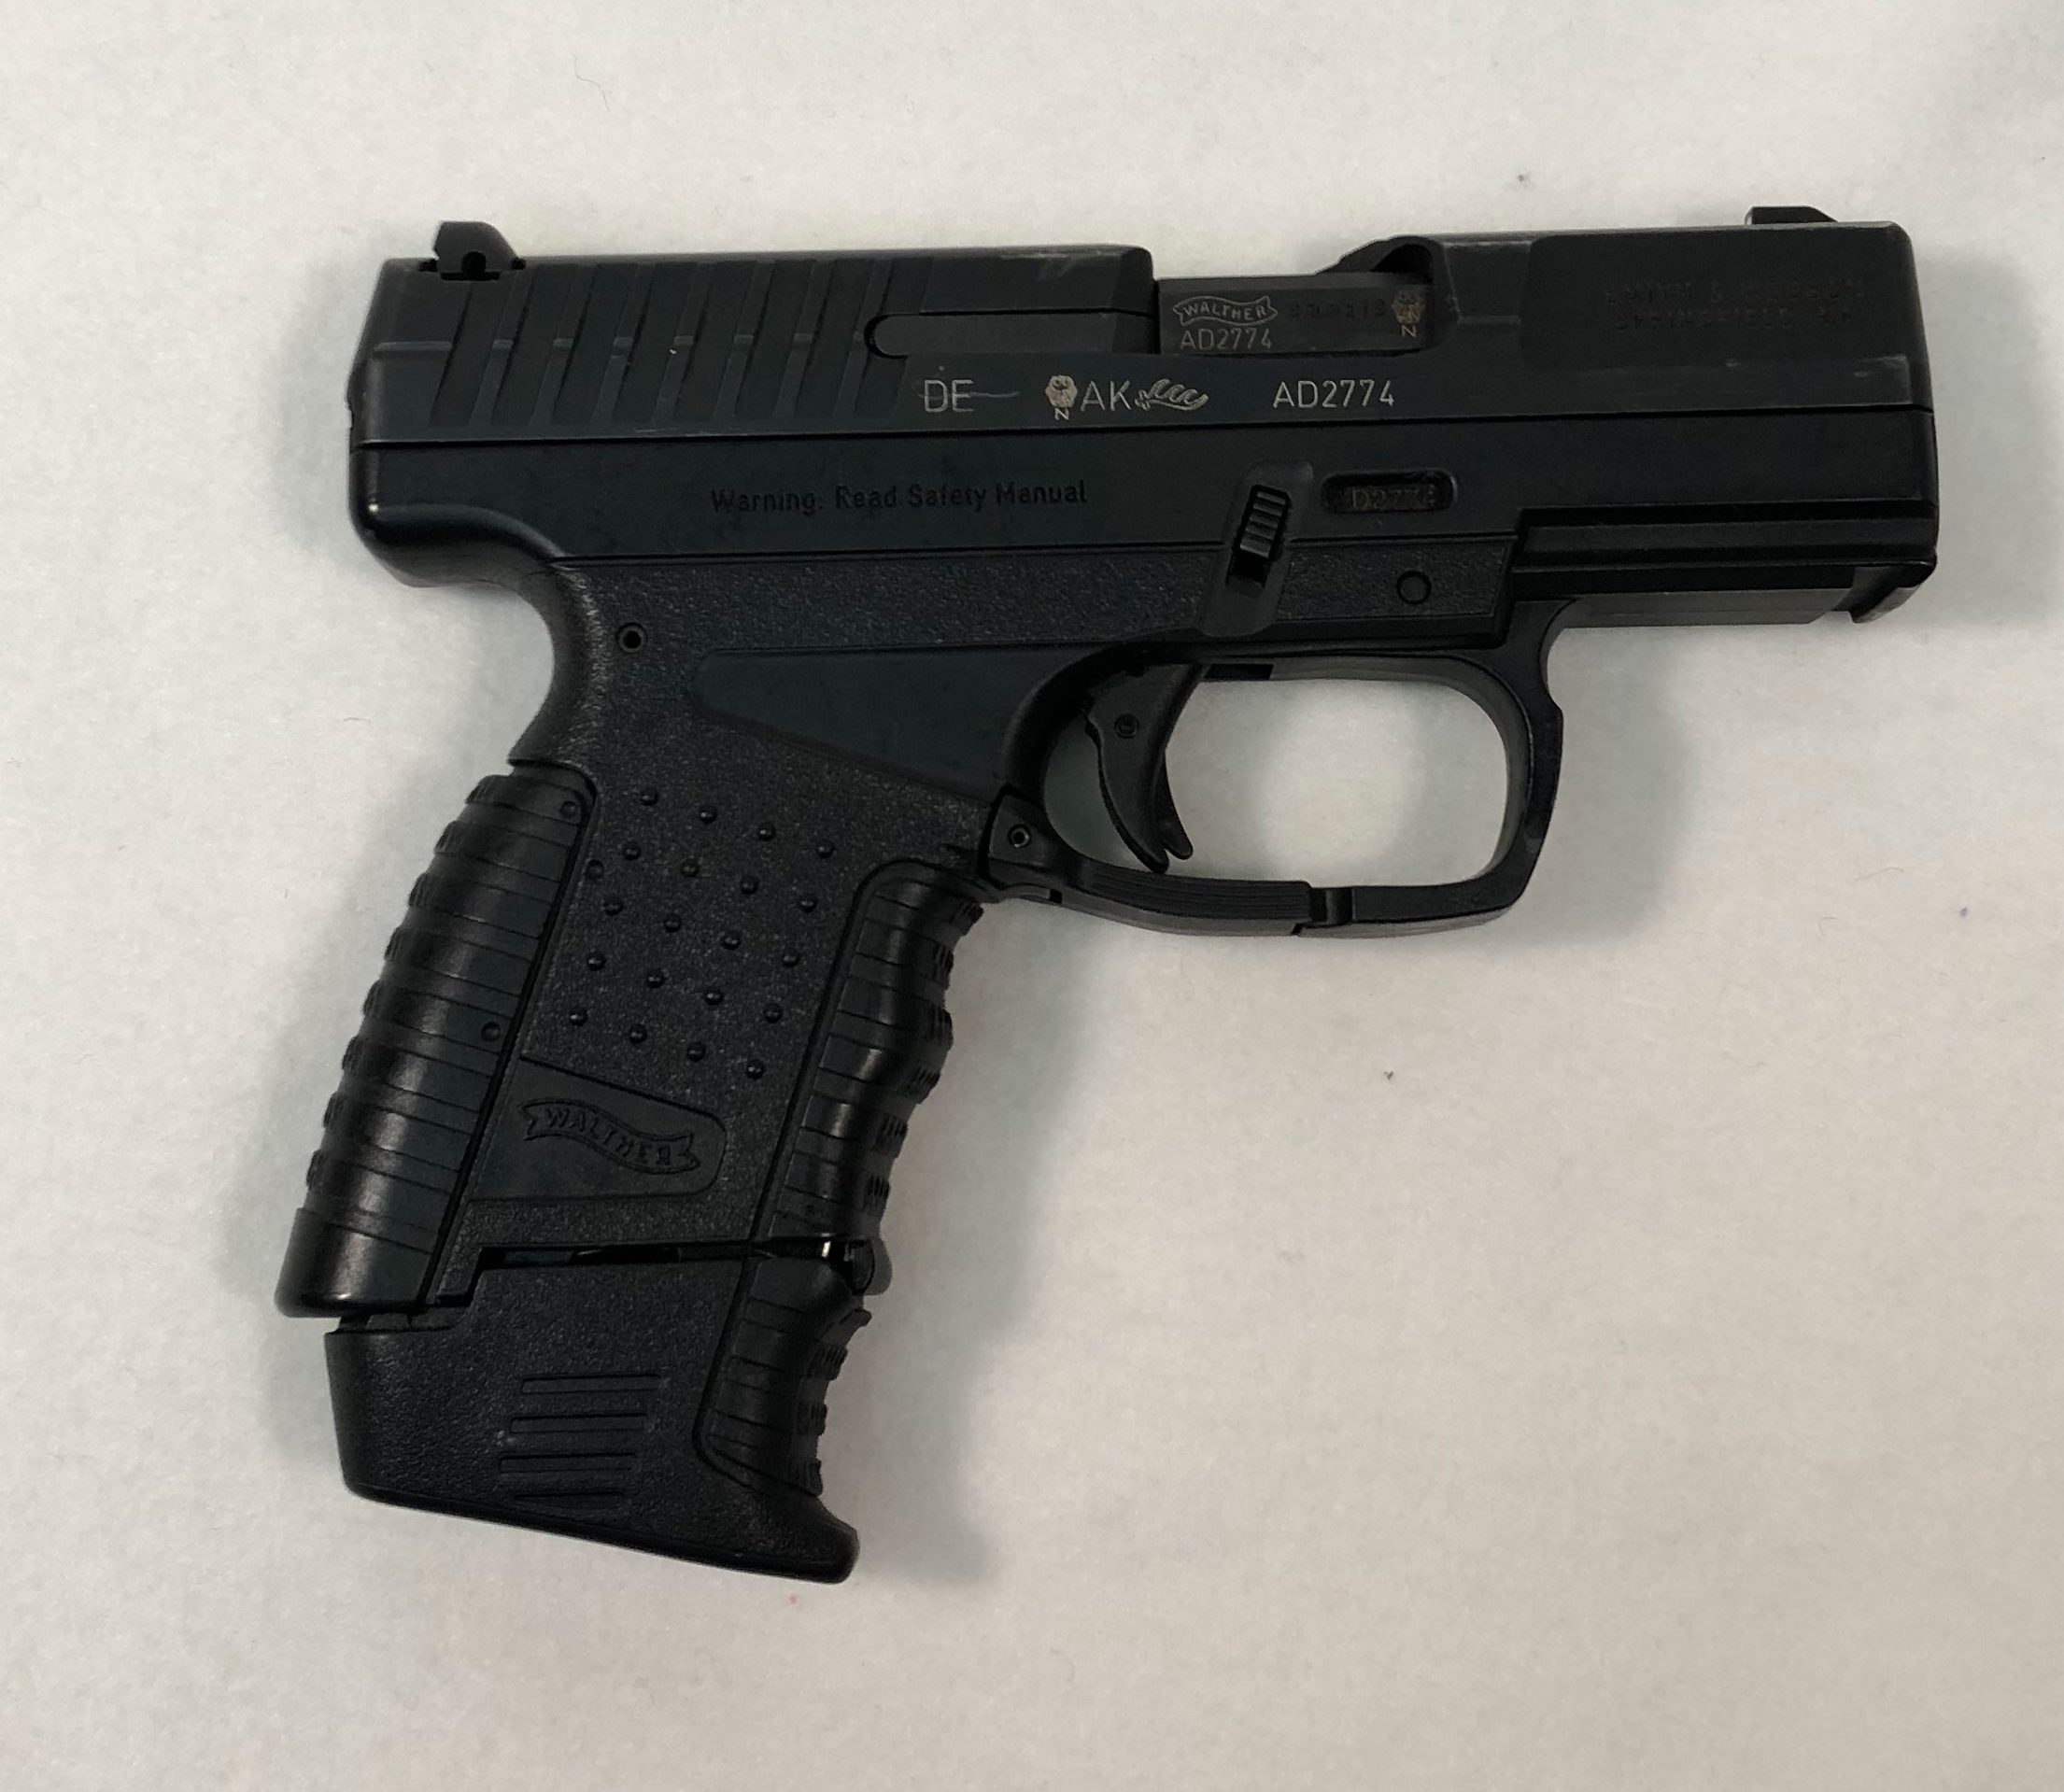 Walther pps manual | Walther PPS - 2019-03-13